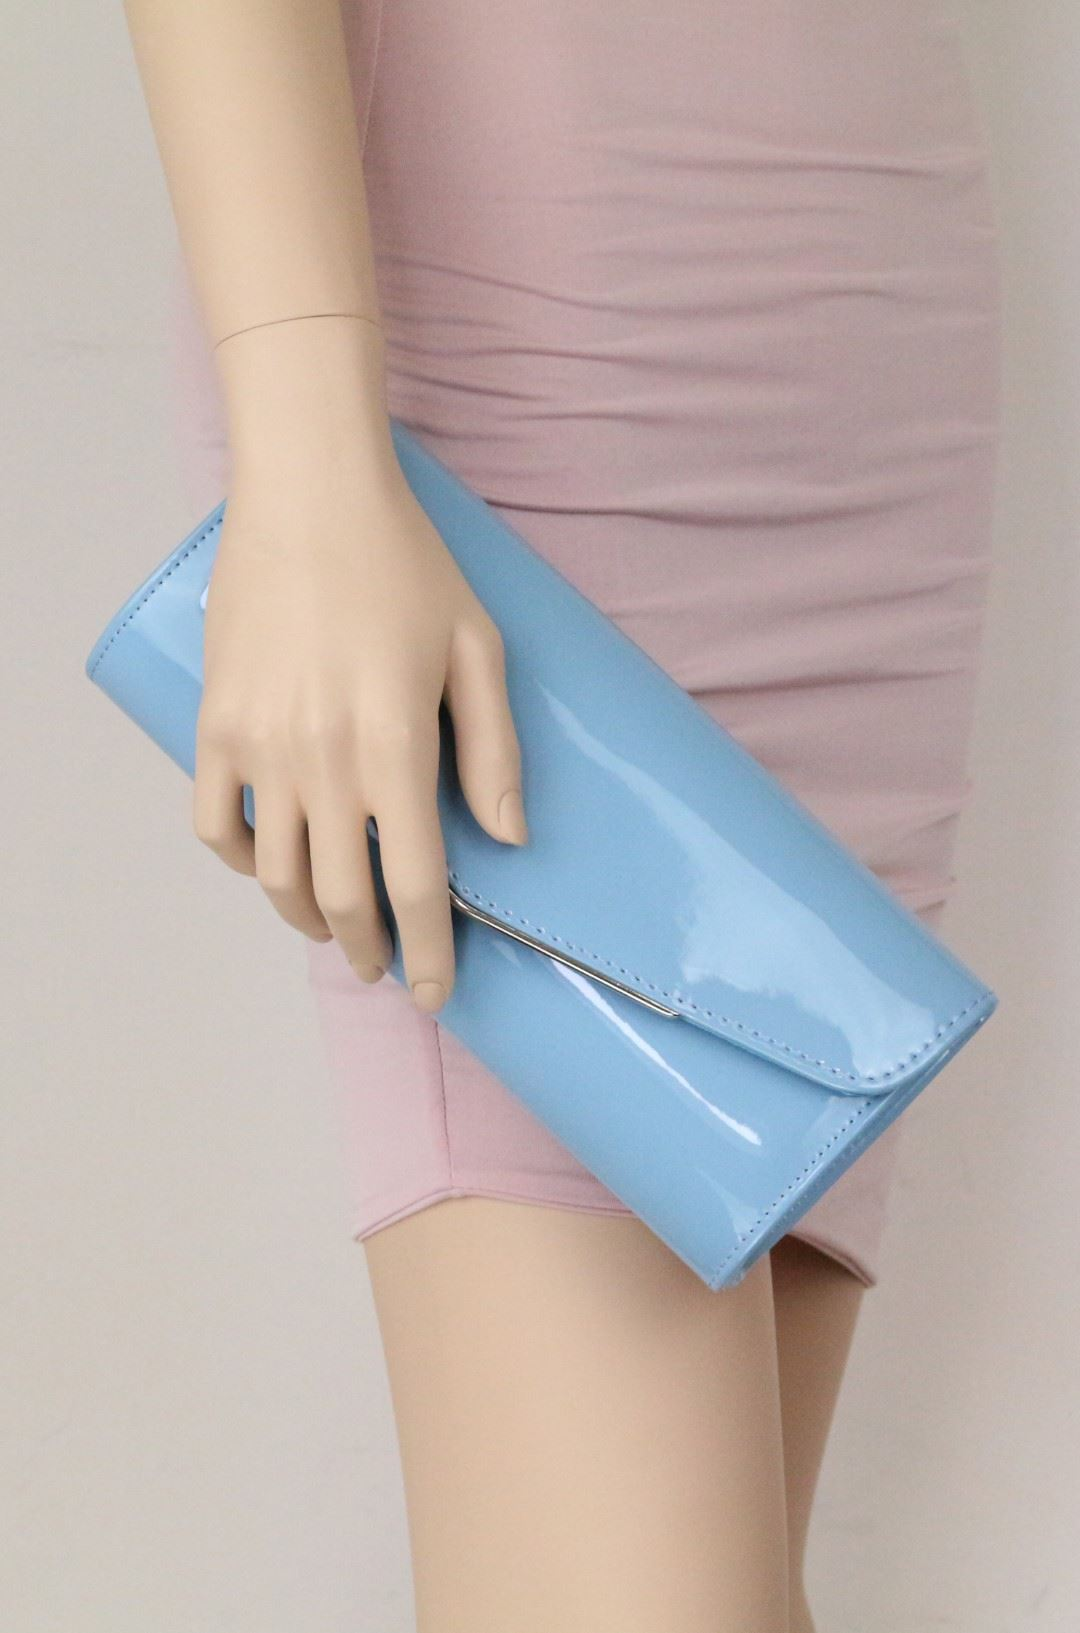 Plain Glossy Clutch Bag Oversized Patent Faux Leather Handbag Metallic Frame